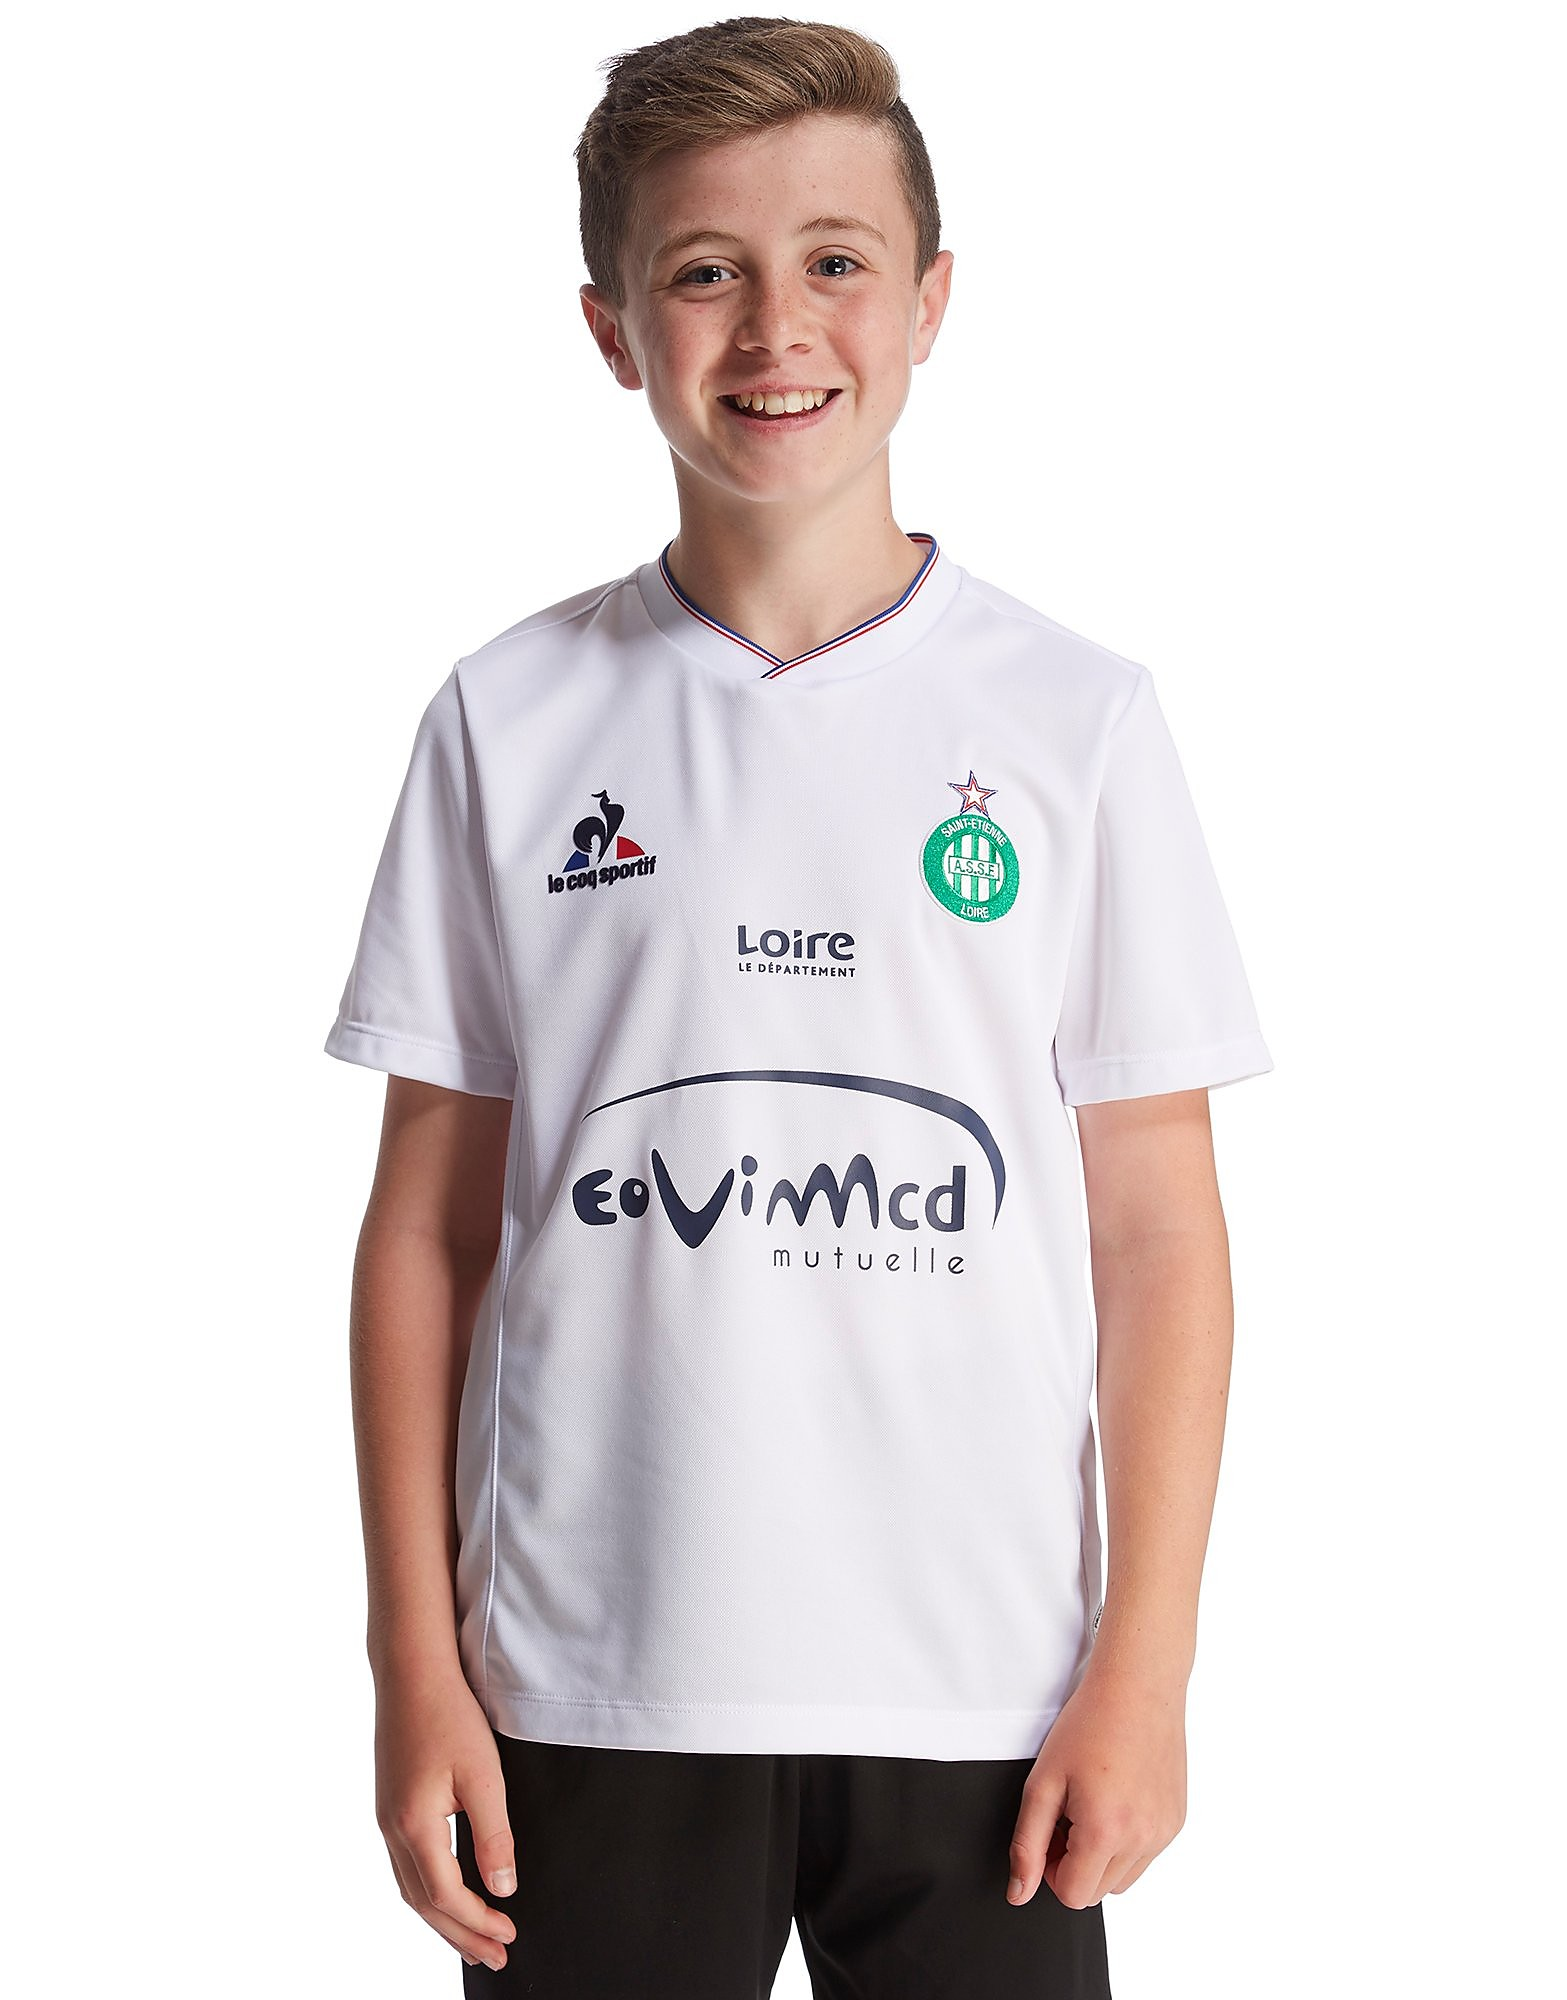 Le Coq Sportif AS Saint Etienne Away 2015/16 Shirt Junior